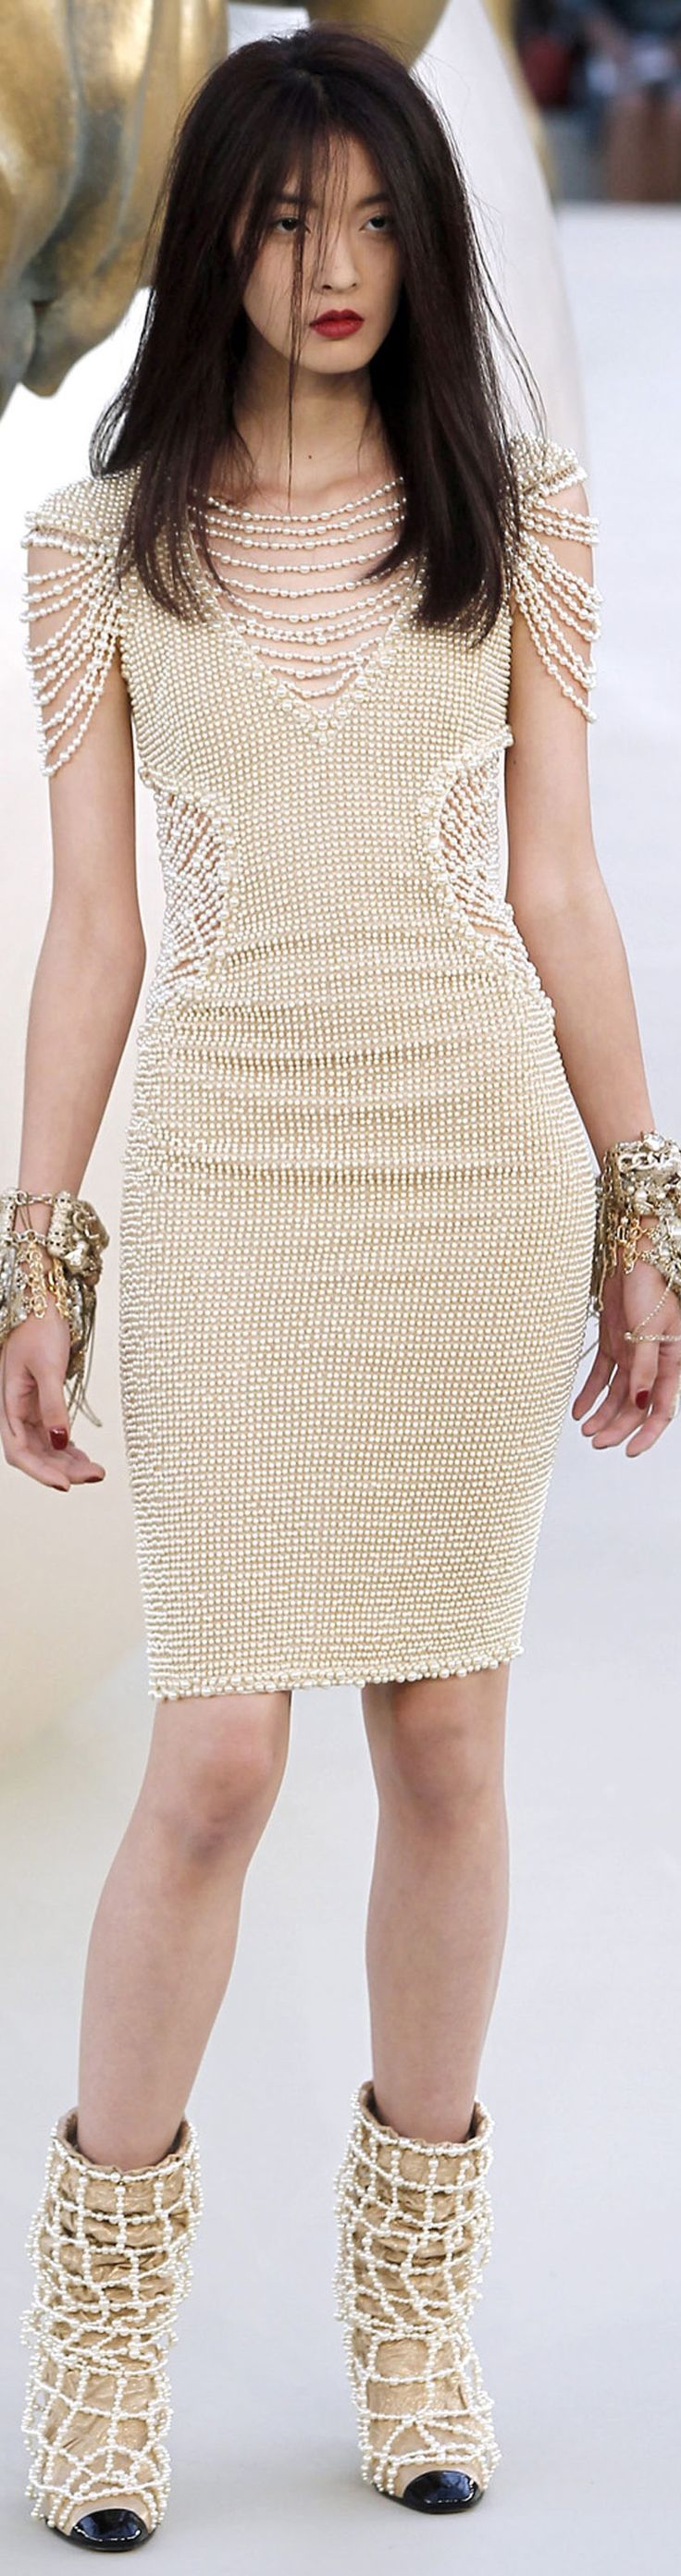 Chanel ~ Couture Pearl Embellished Nude Dress 2010